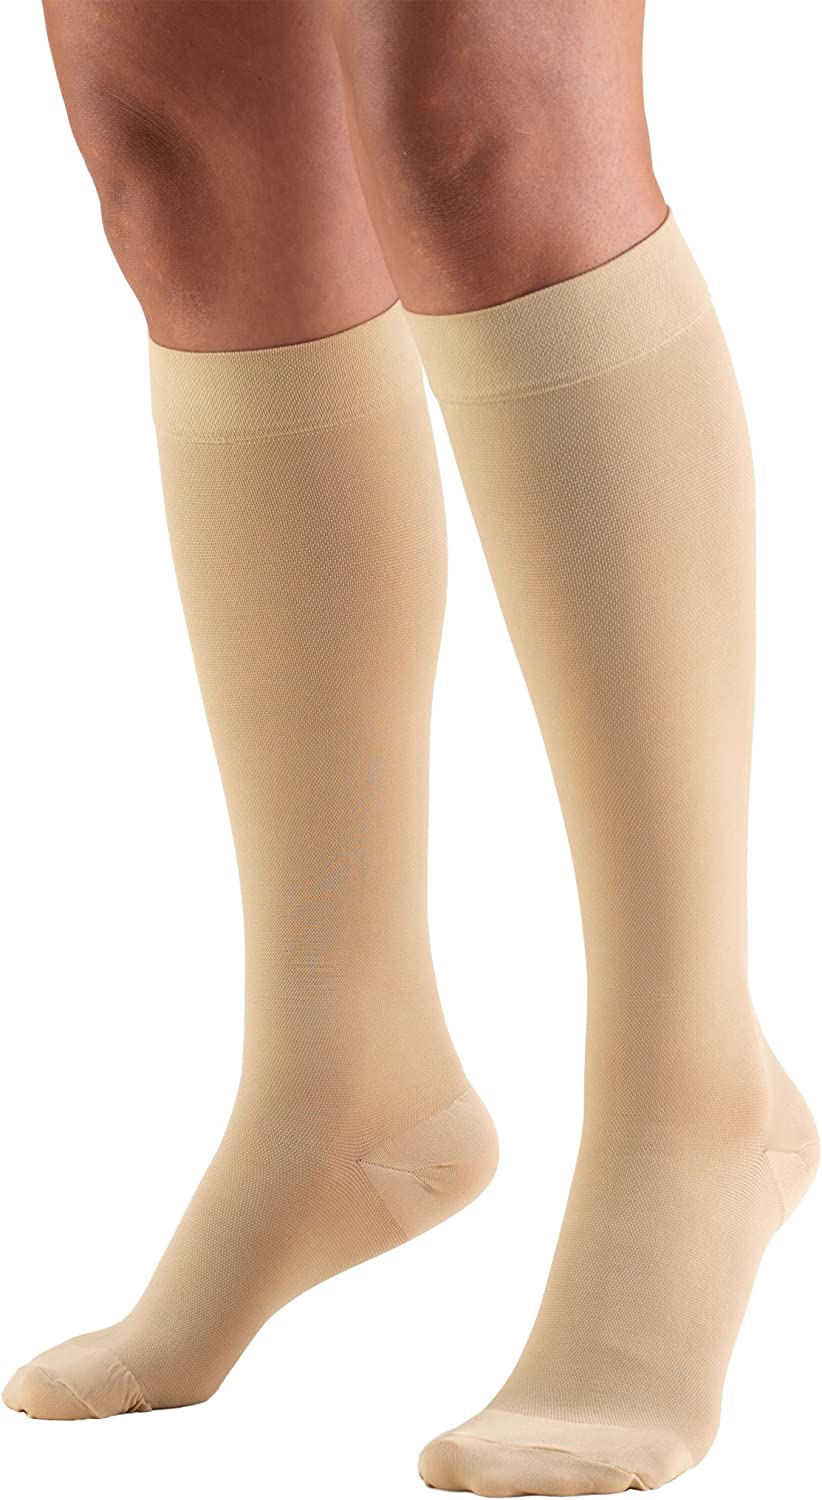 Amazon Com Truform 20 30 Mmhg Compression Stockings For Men And Women Knee High Length Closed Toe Beige Medium Truform Health Personal Care